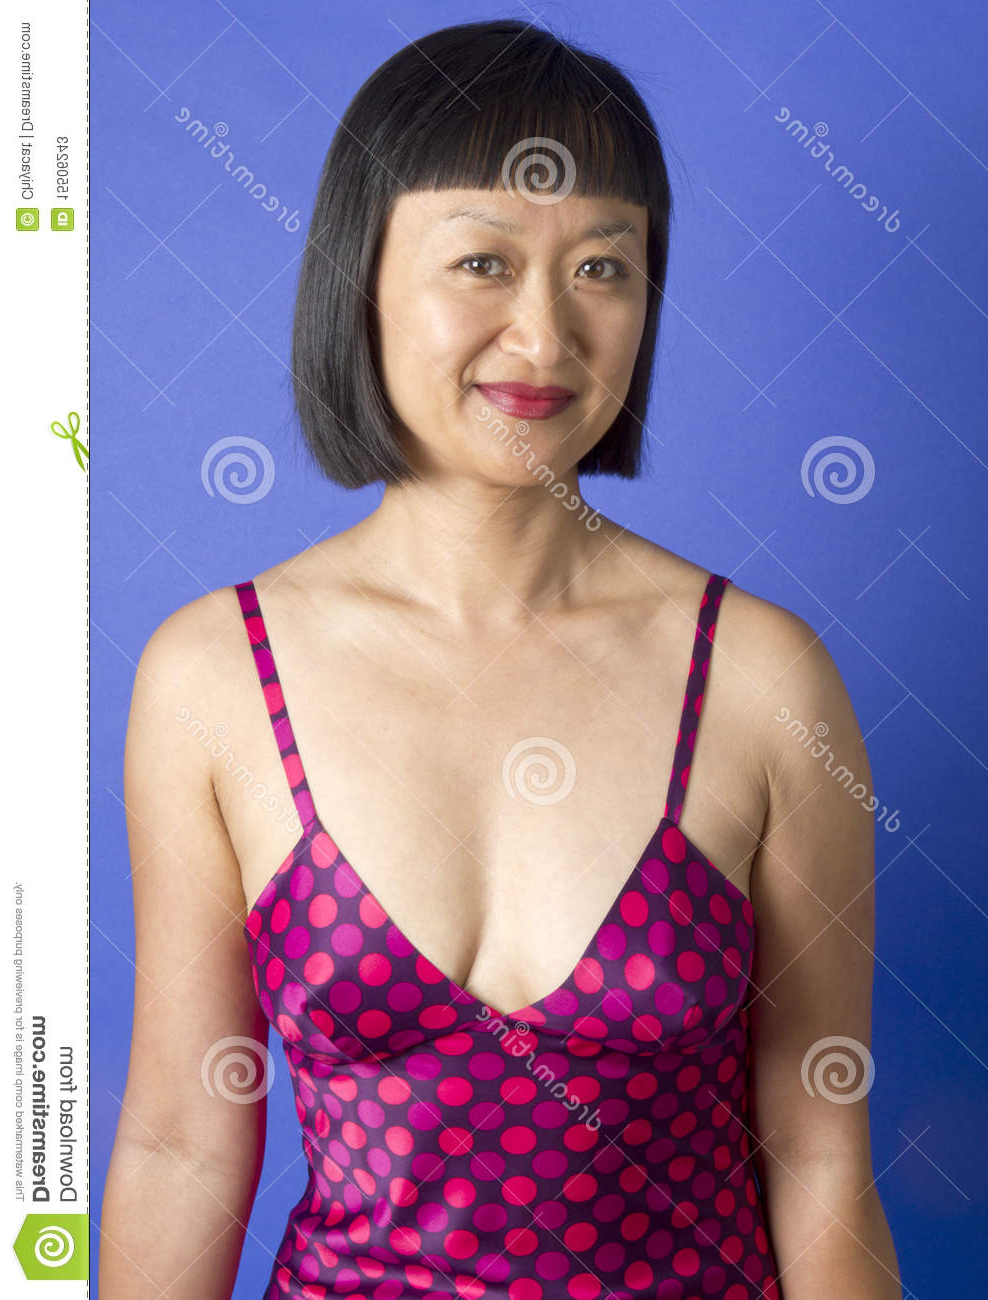 Asian Woman With Short Hair Smiling Stock Image – Image Of Throughout Short Hairstyles For Asian Girl (Gallery 20 of 25)